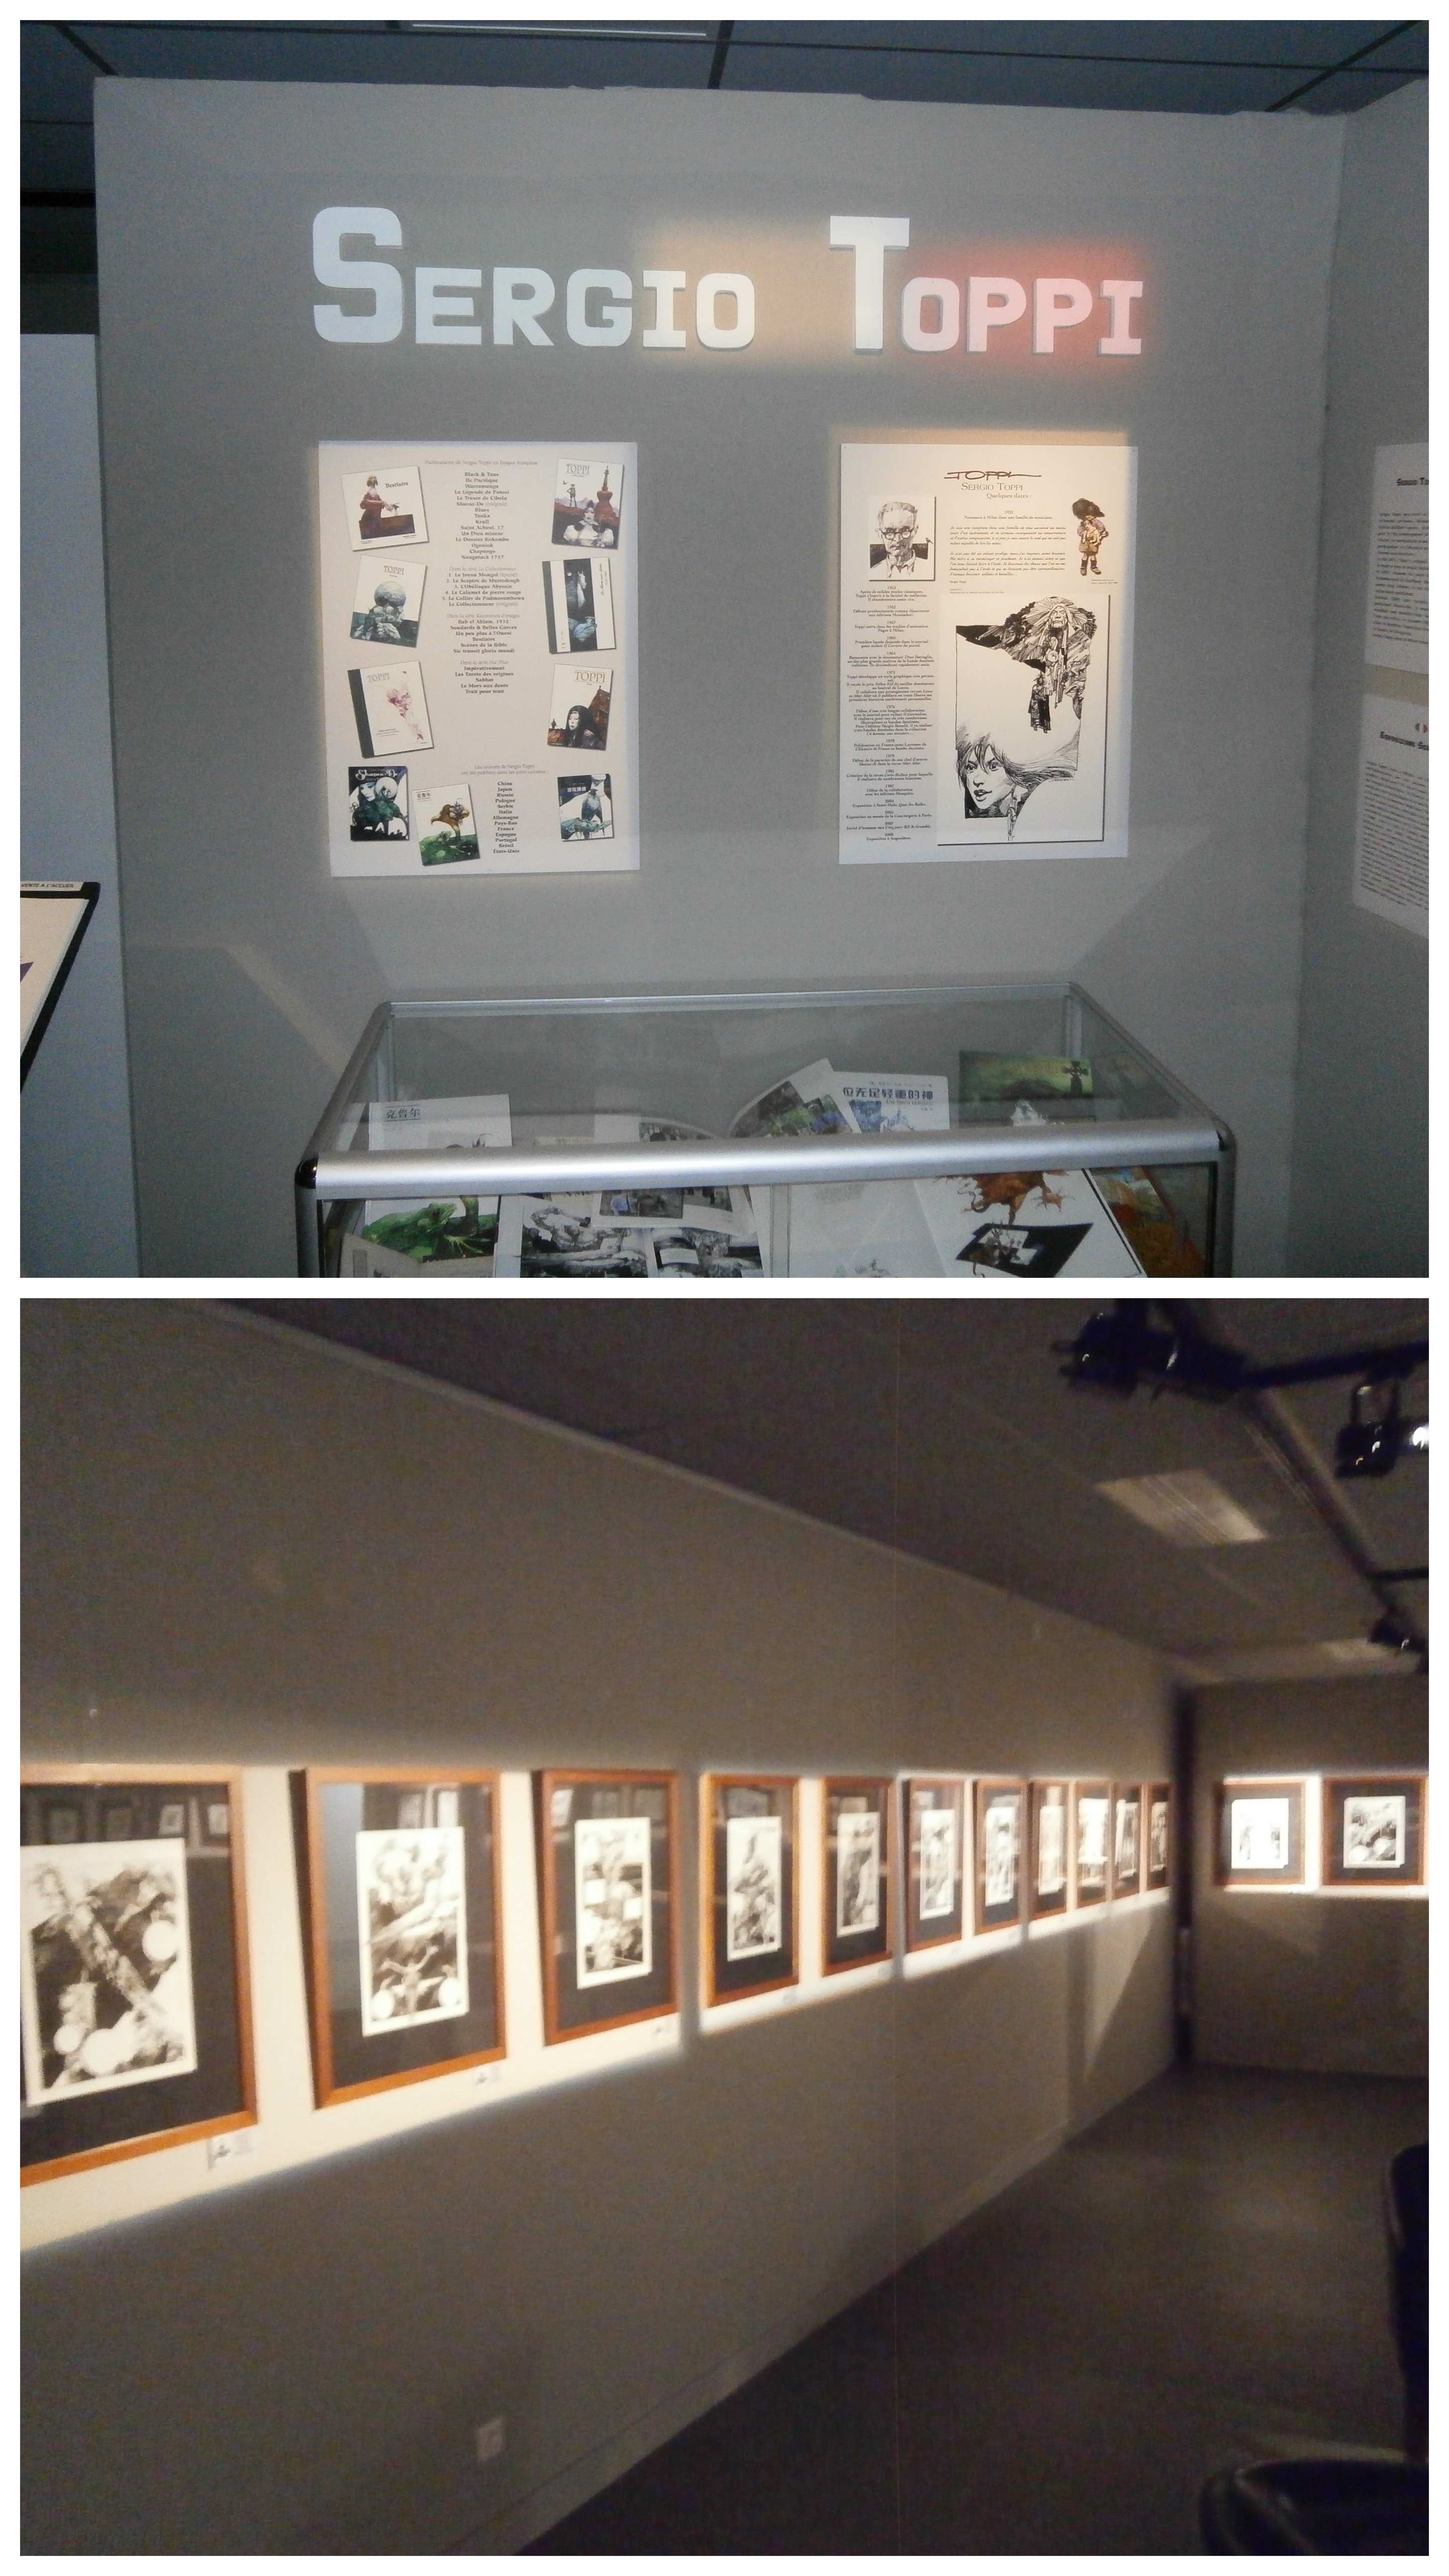 [inspi] Expositions / Musées / Salons... - Page 3 Toppi1